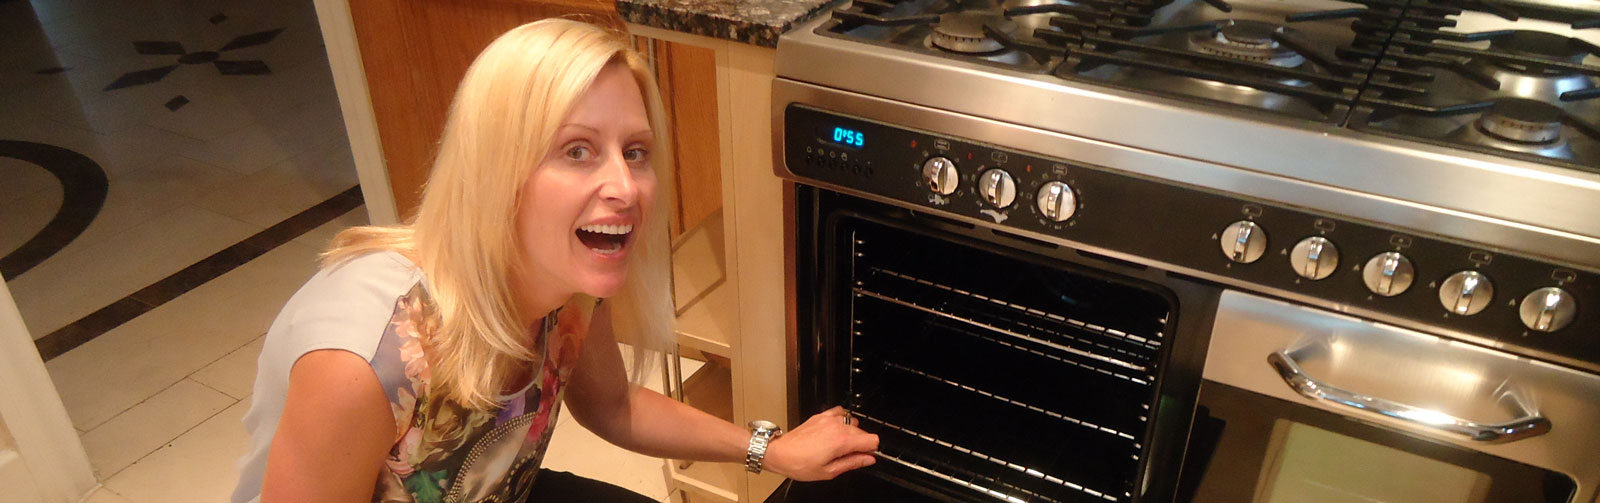 Oven Cleaning Reviews for OvenKing